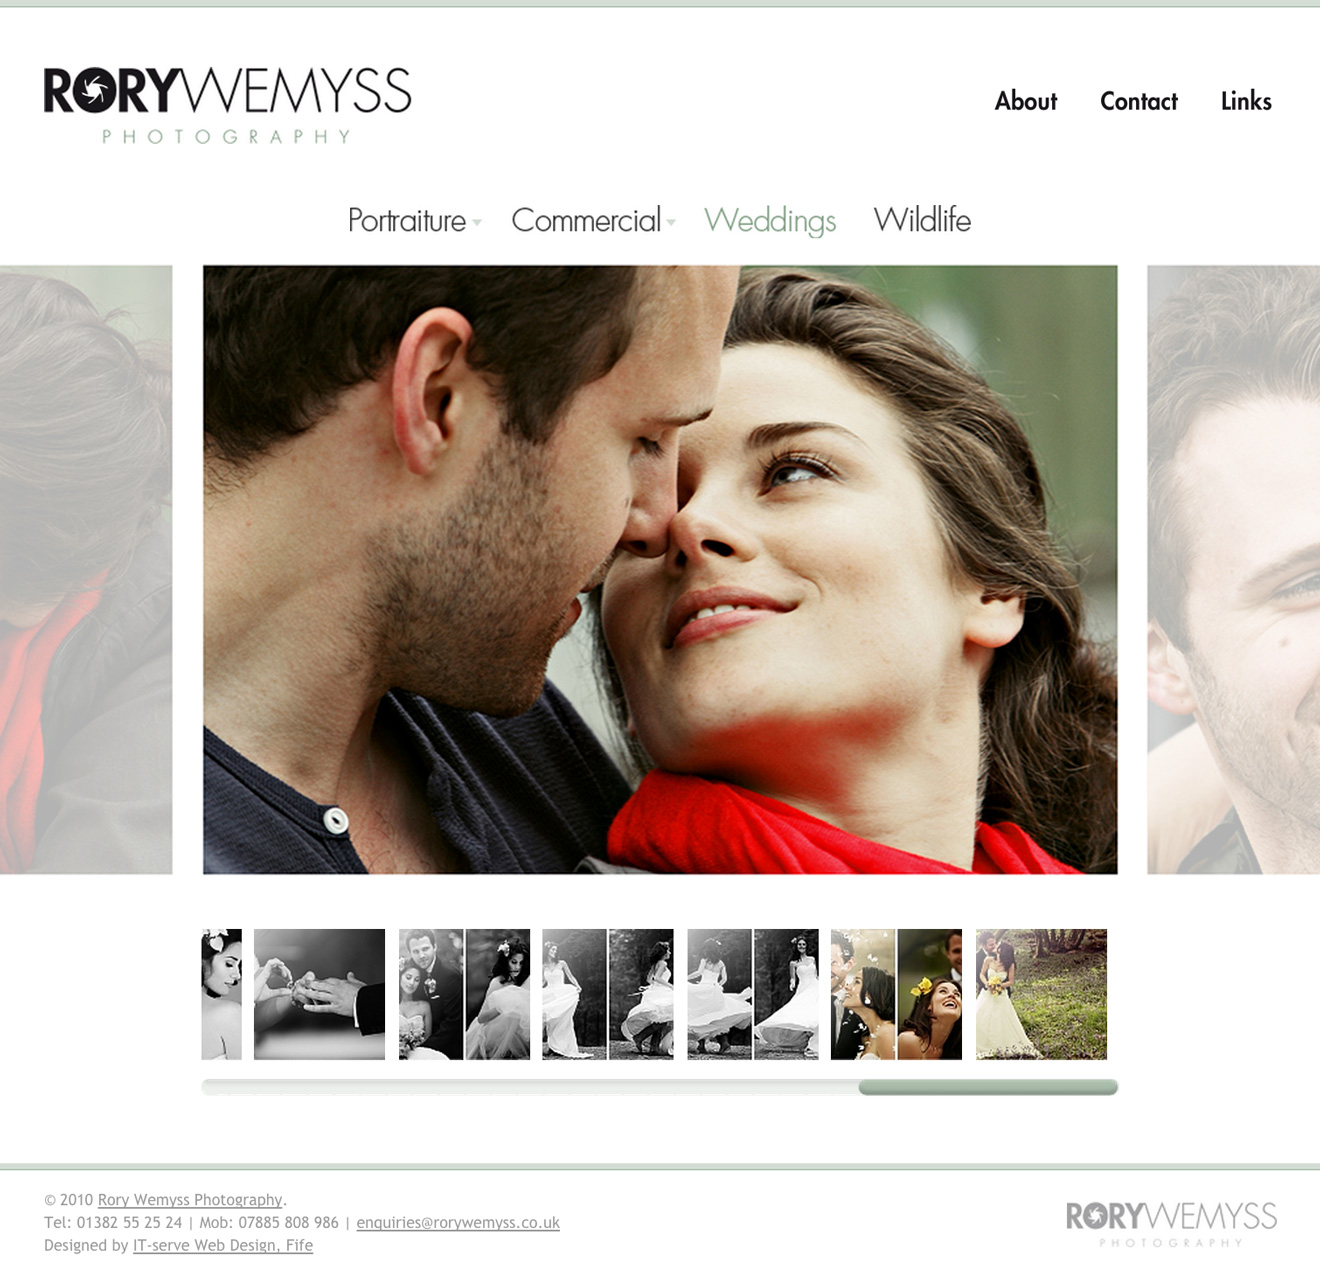 Rory Wemyss Photography home page